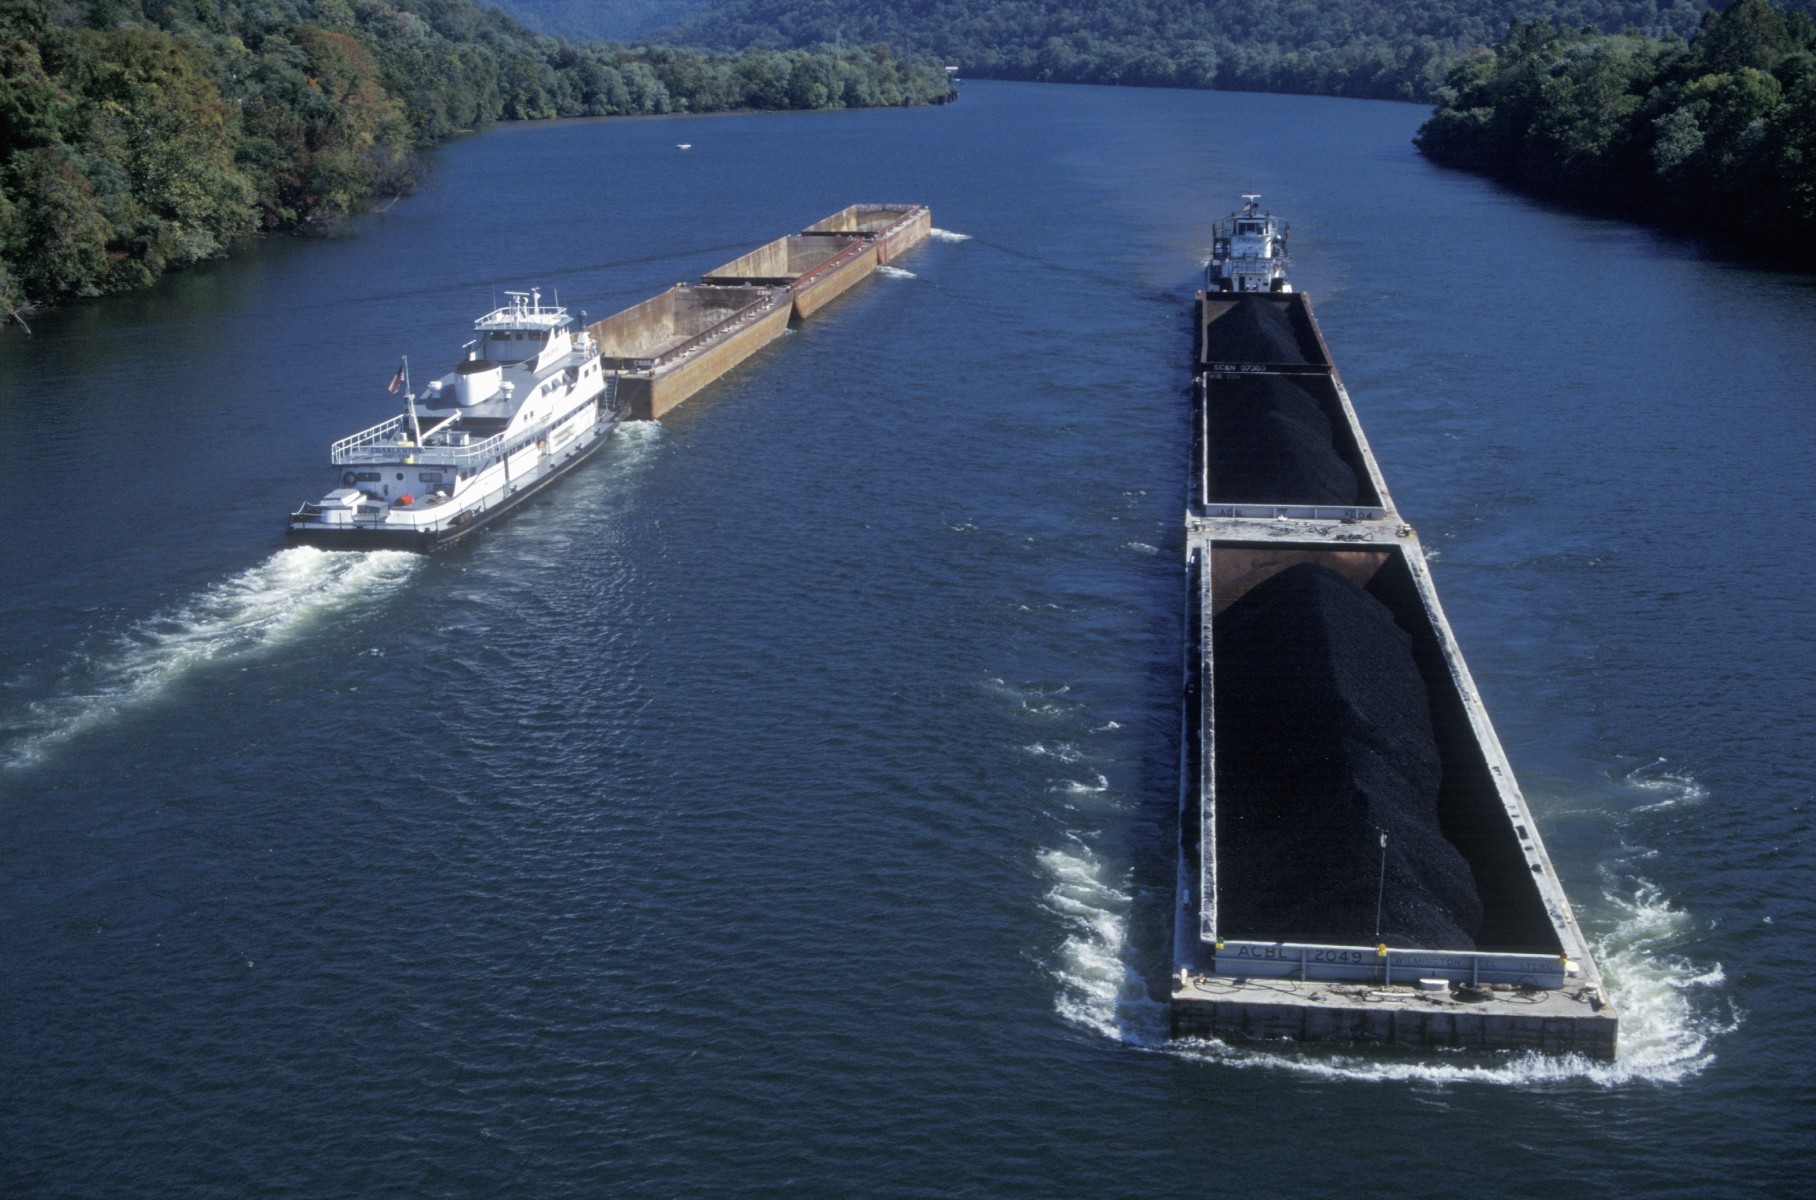 Coal barges on the Kanawha River in West Virginia